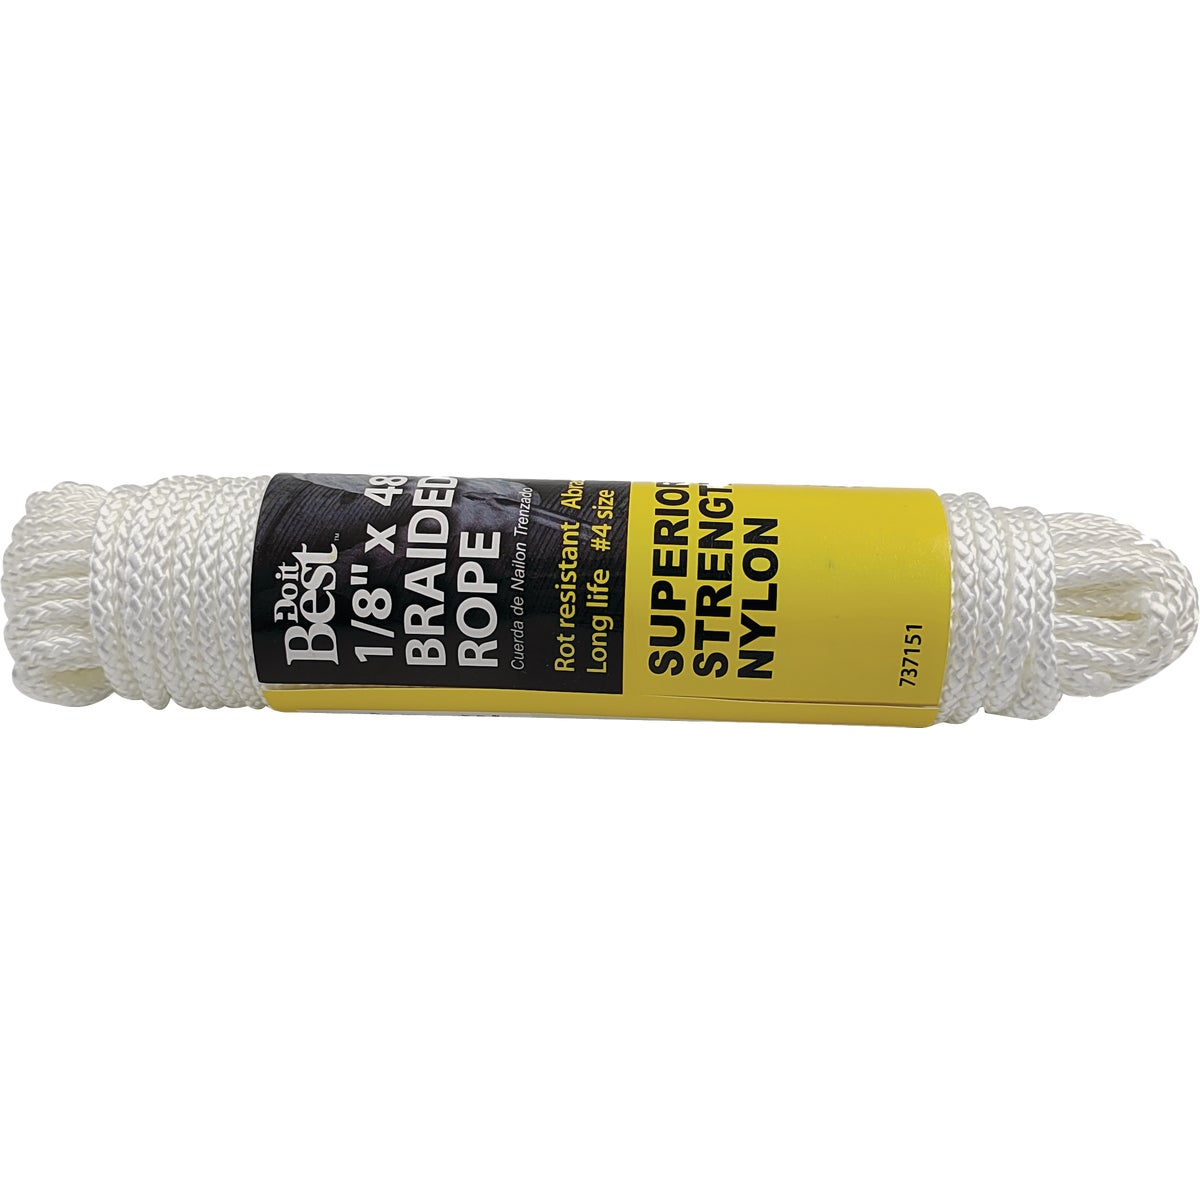 "1/8""X48' NYL BRAID ROPE - 737151 by Do it Best"